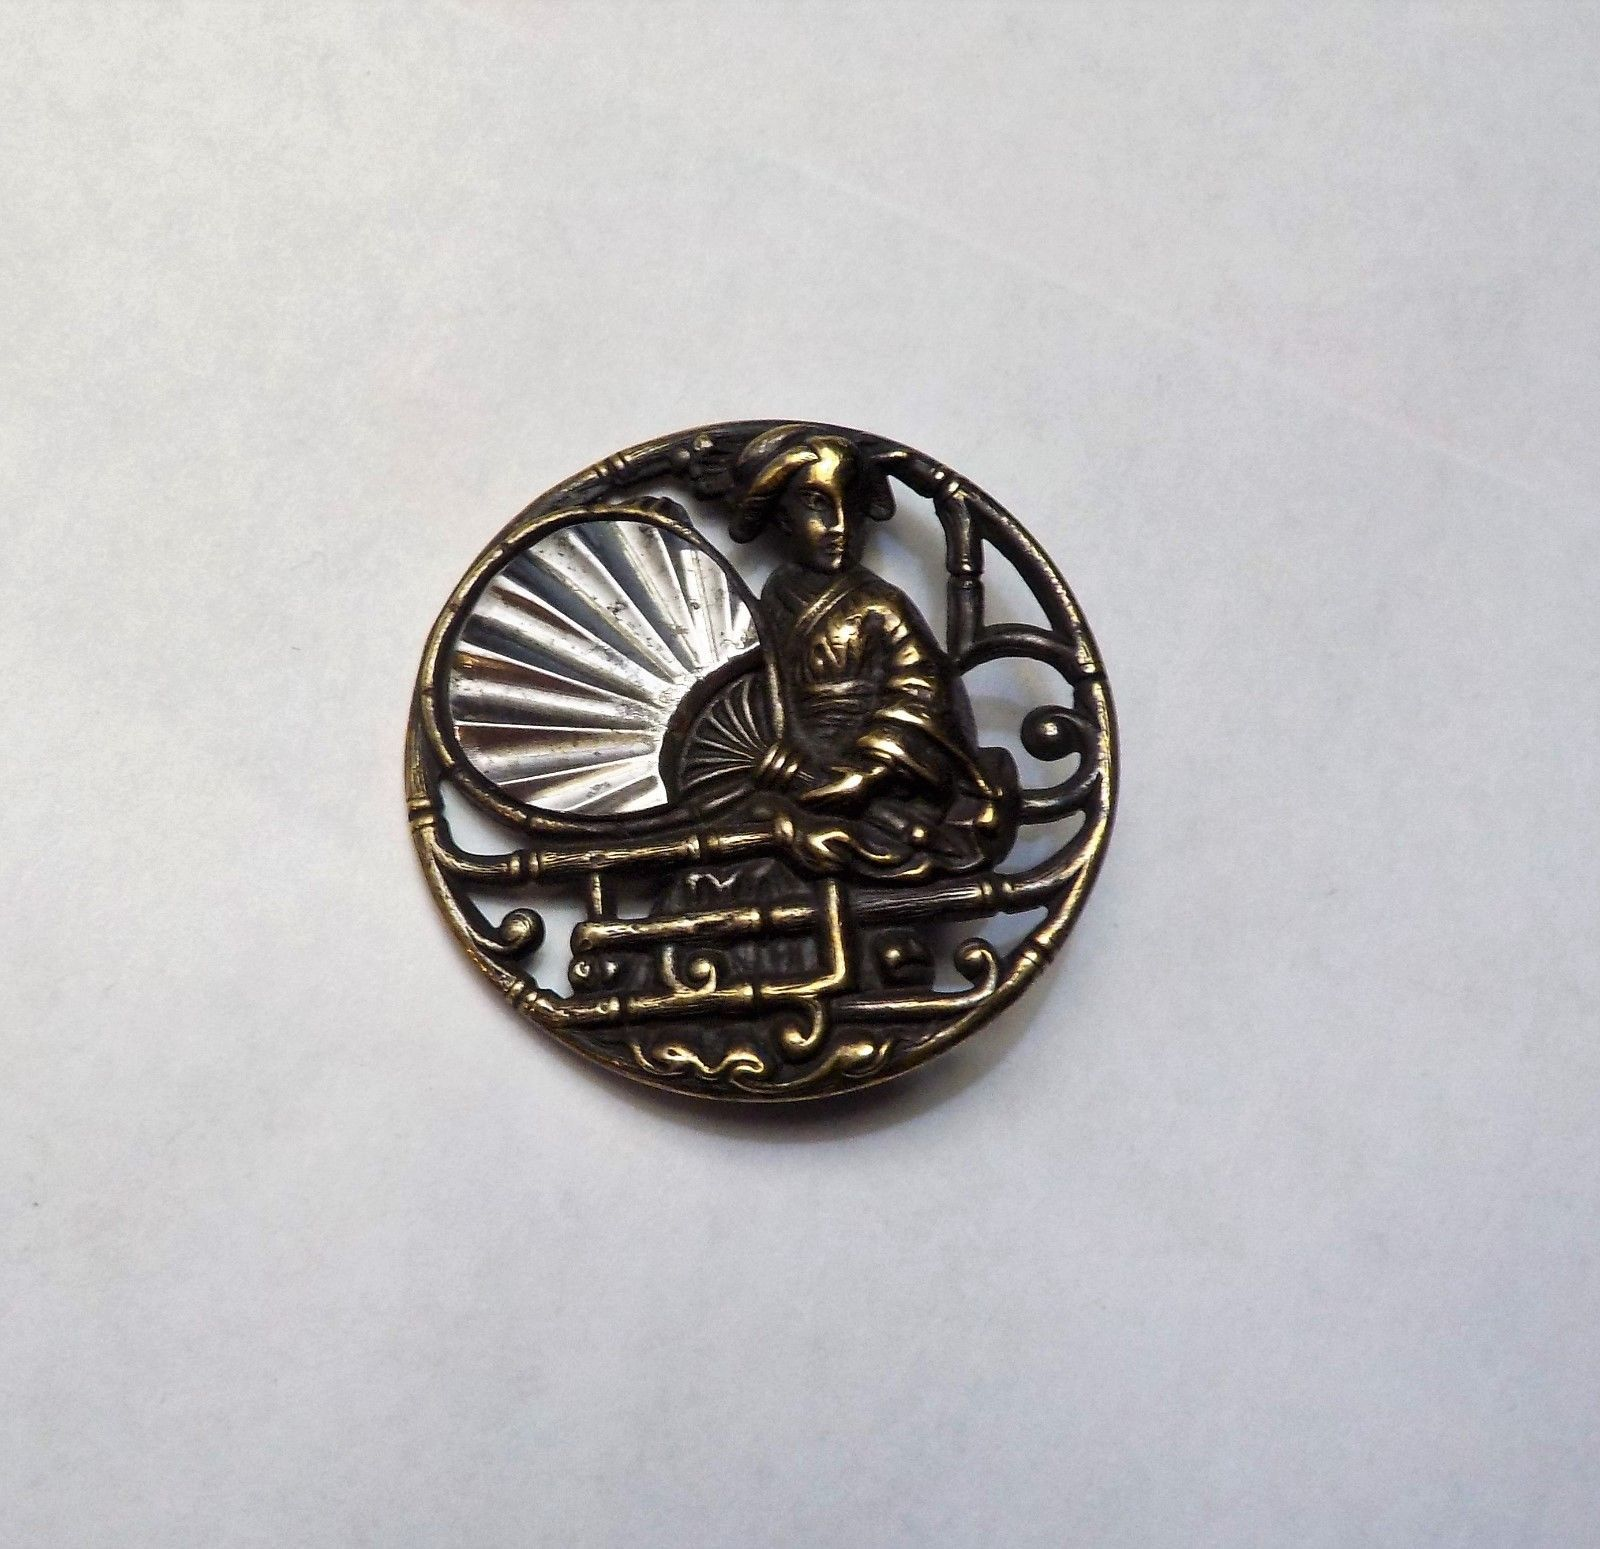 ANTIQUE BRASS & STEEL JAPANESE, ASIAN FAN PICTURE BUTTON VICTORIAN MIRROR FINISH